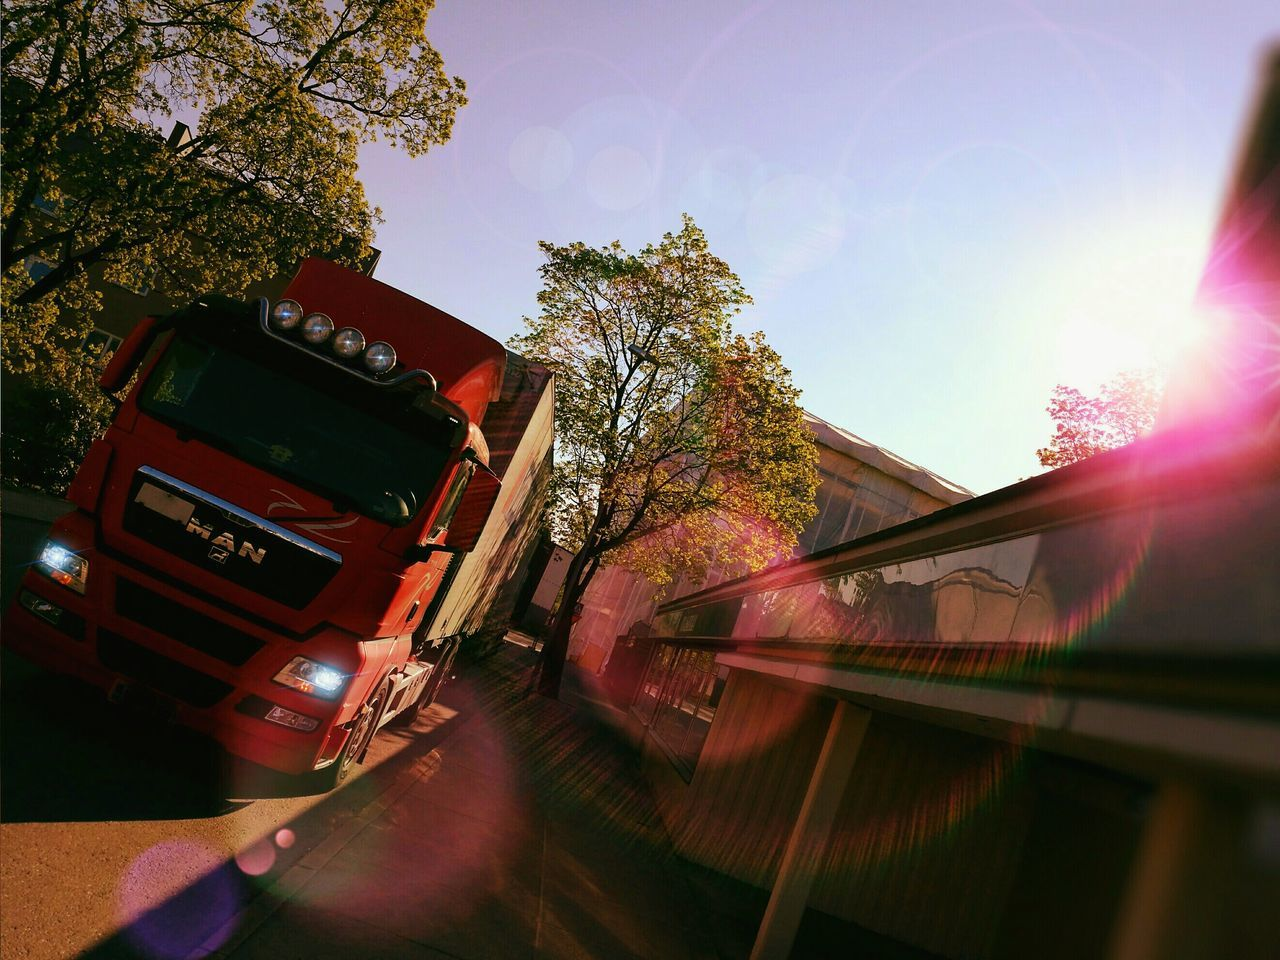 WorkingTruck Long VehicleUnloading Small Street Sunshine Lensflare Morning Sun Morning